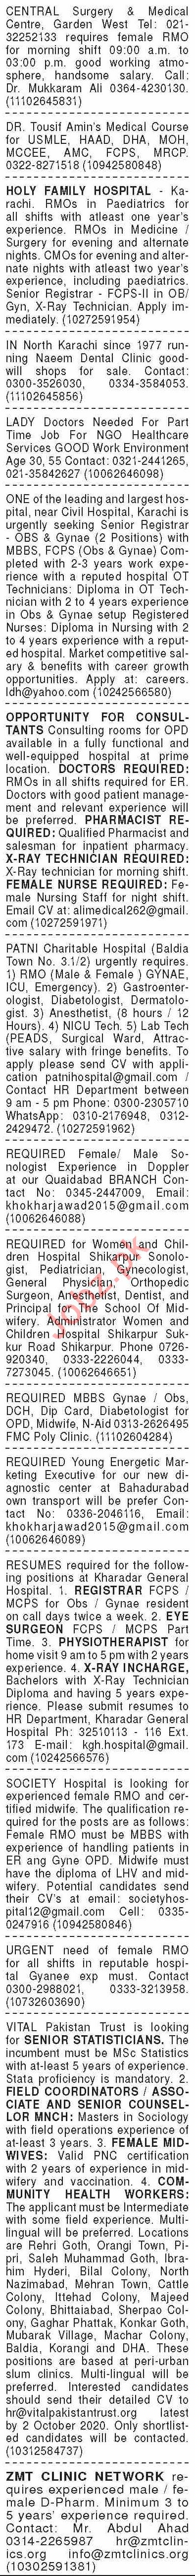 Dawn Sunday Classified Ads 20 Sept 2020 for Medical Staff